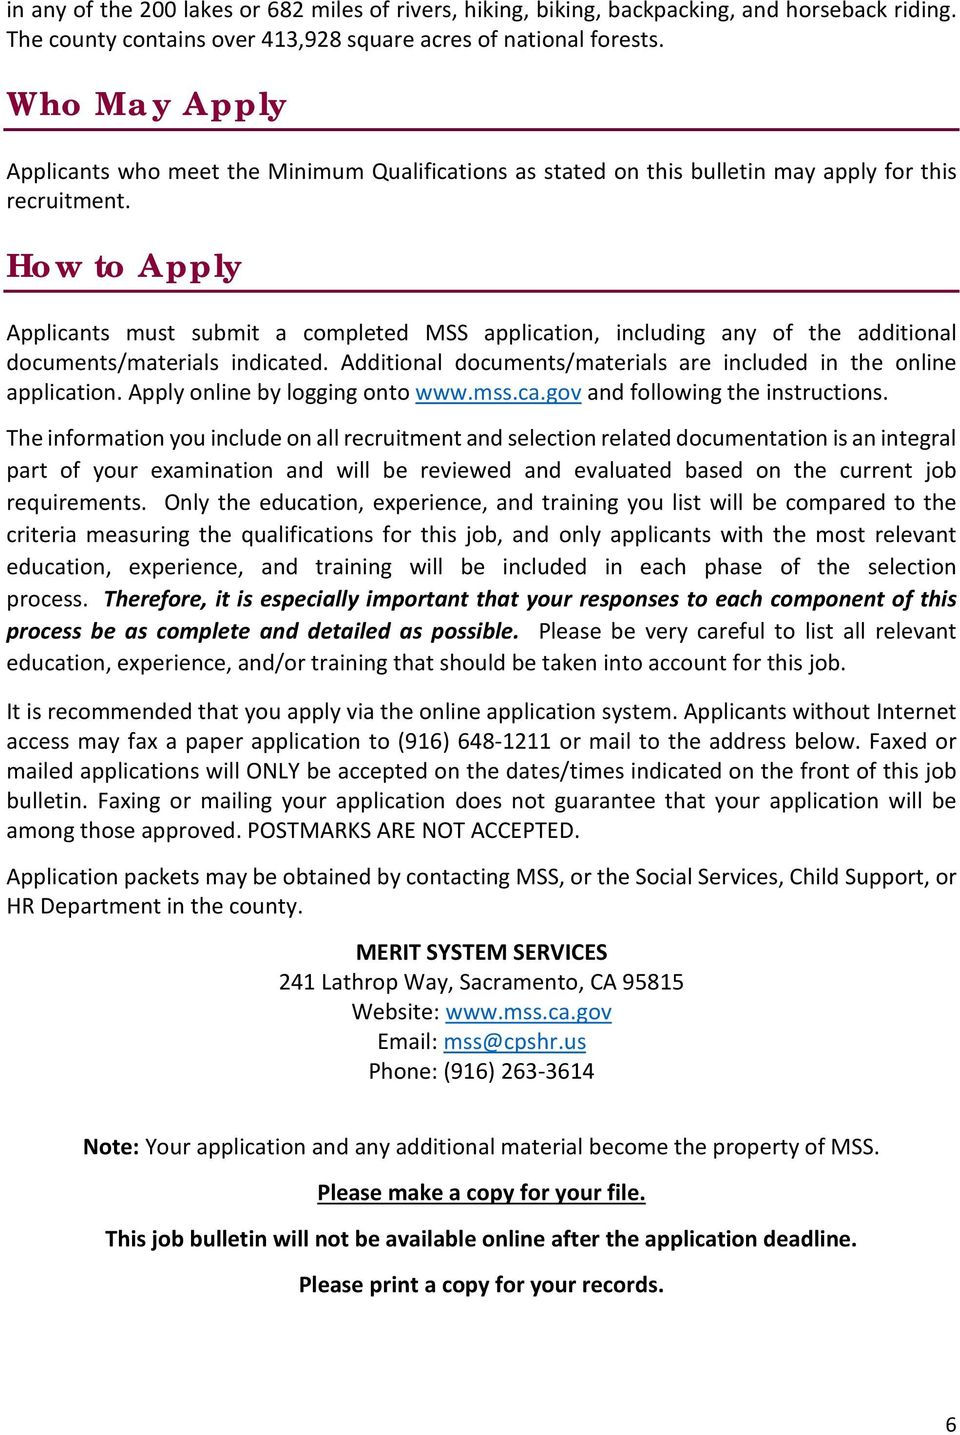 How to Apply Applicants must submit a completed MSS application, including any of the additional documents/materials indicated. Additional documents/materials are included in the online application.